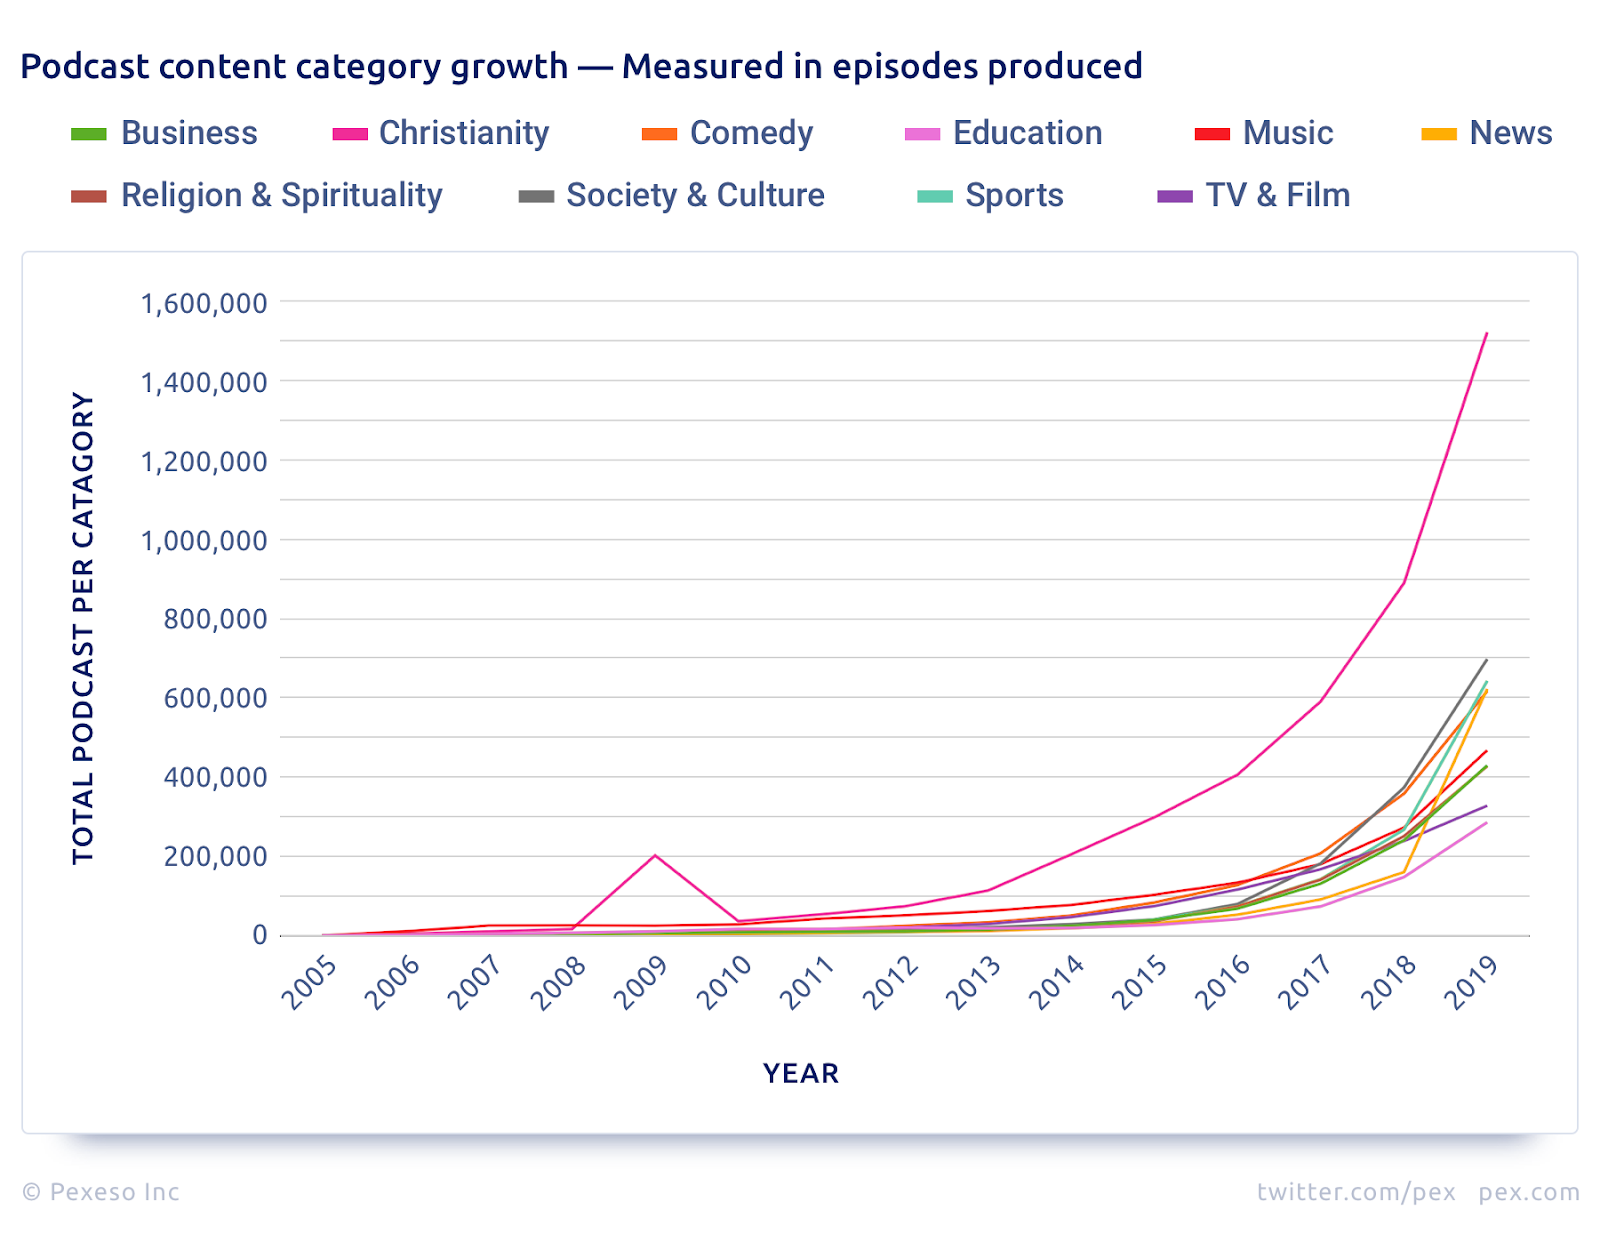 Content-Category-Growth-Episodes-Produced-Measured